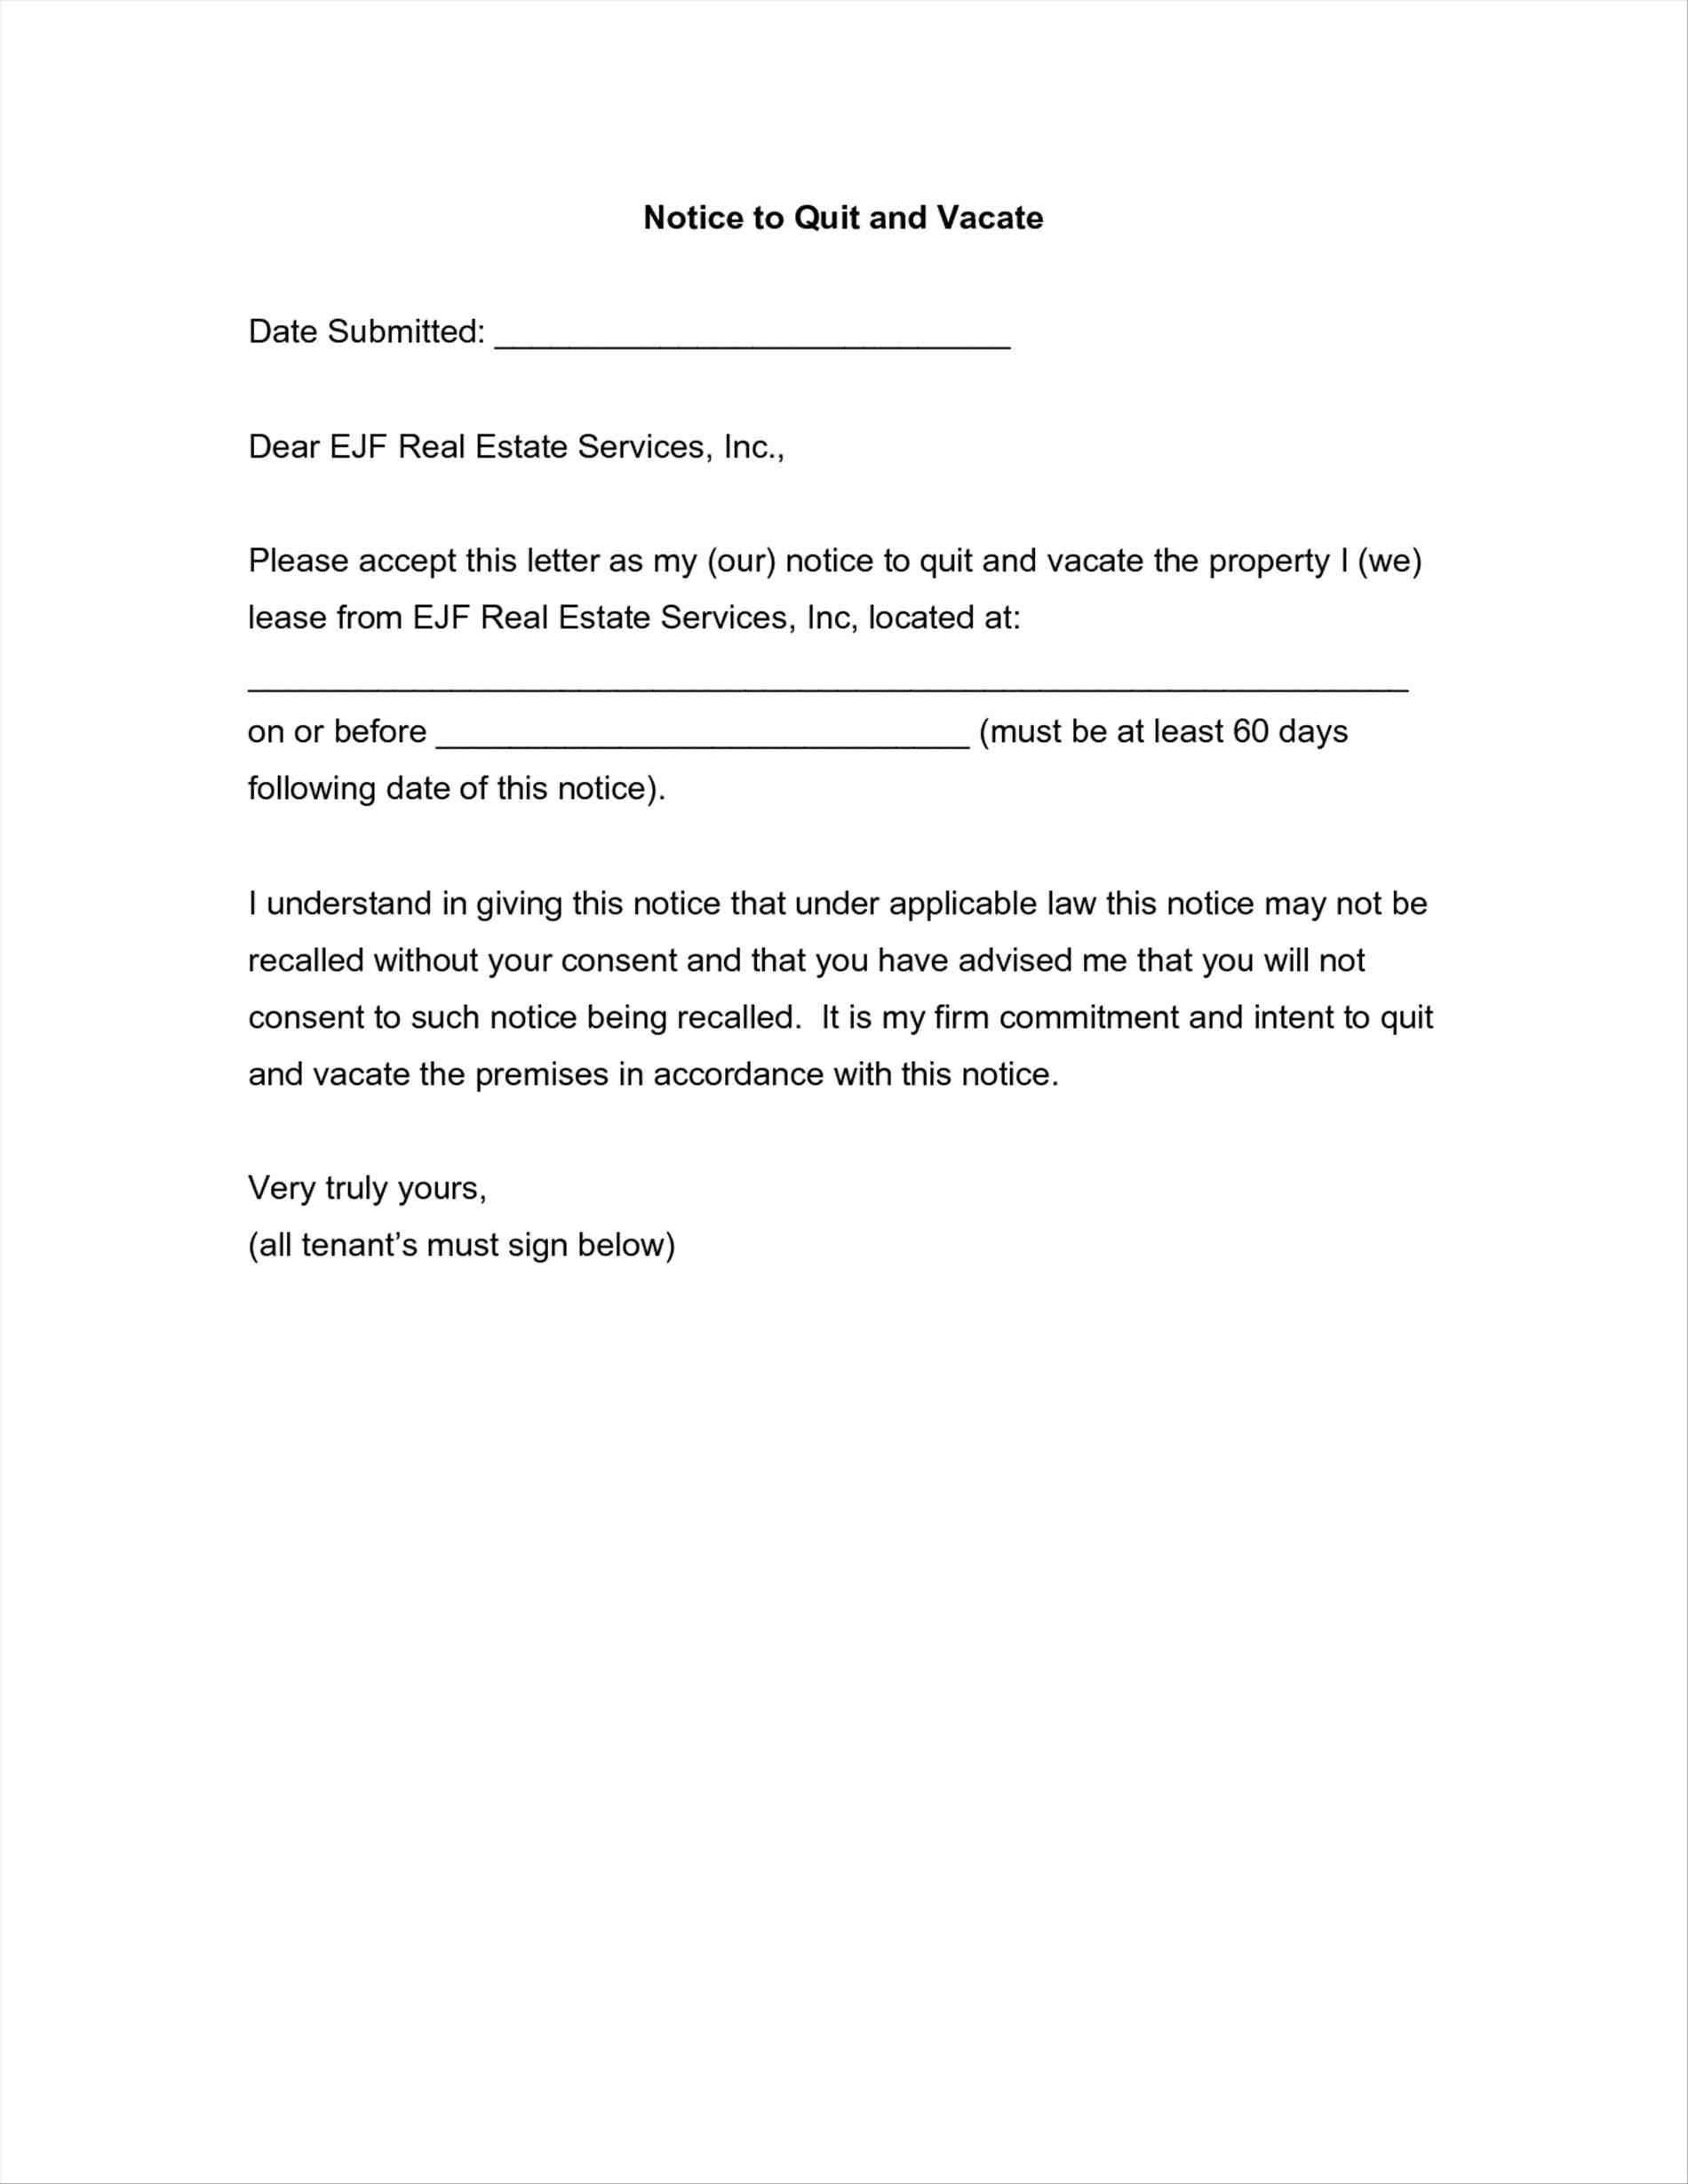 Notice Of Intent to Vacate Letter Template - Template for 60 Day Notice to Vacate